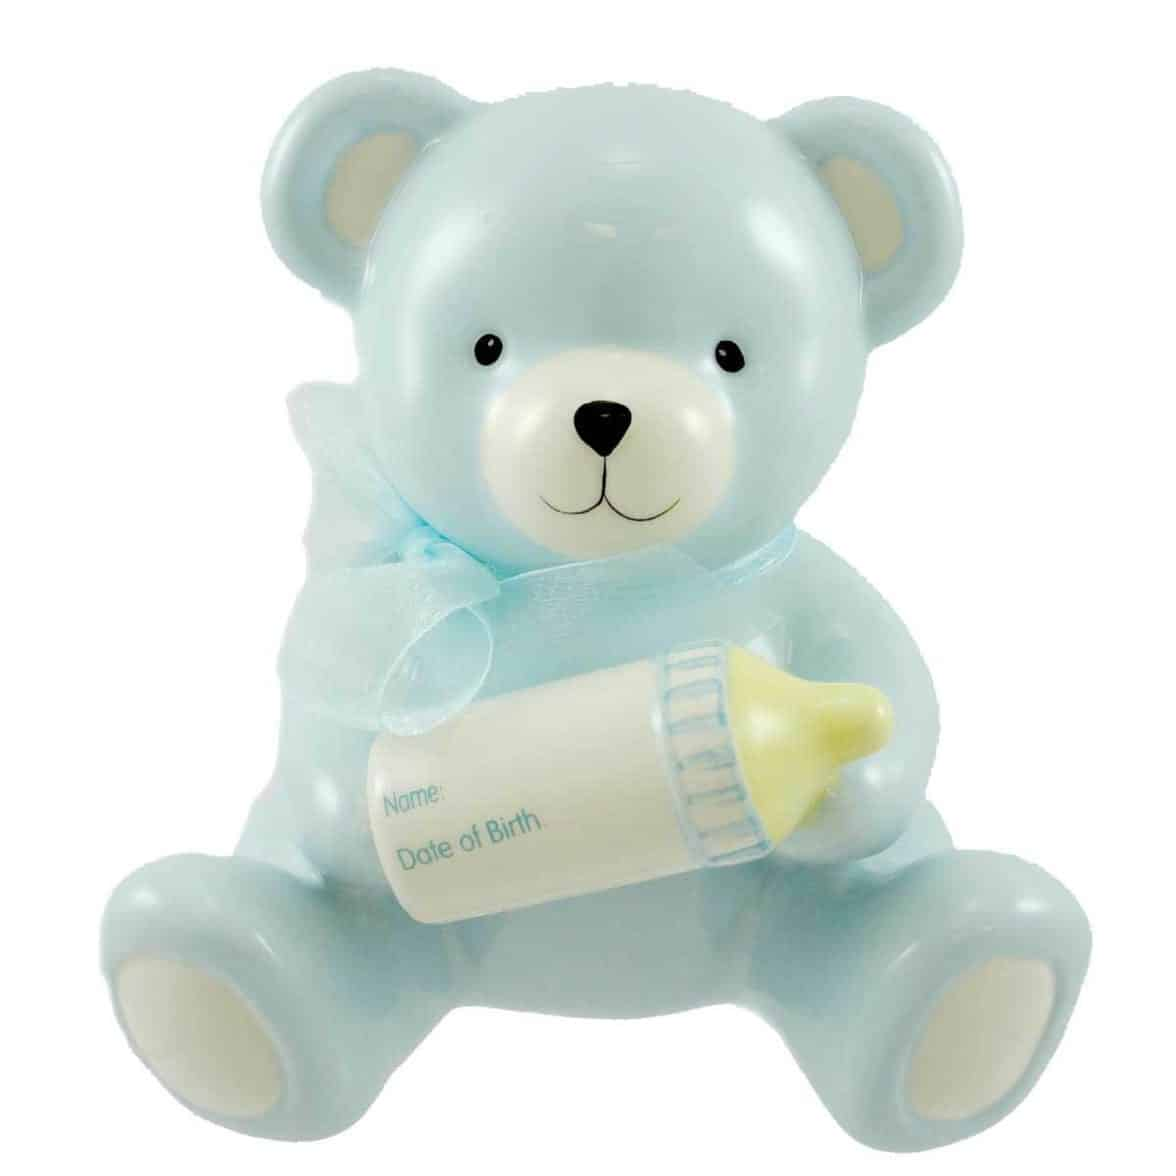 Baby Boy's Blue Bear Piggy Bank Holding Baby Bottle With Birth Information Infant Nursery Decor And Birth Gift